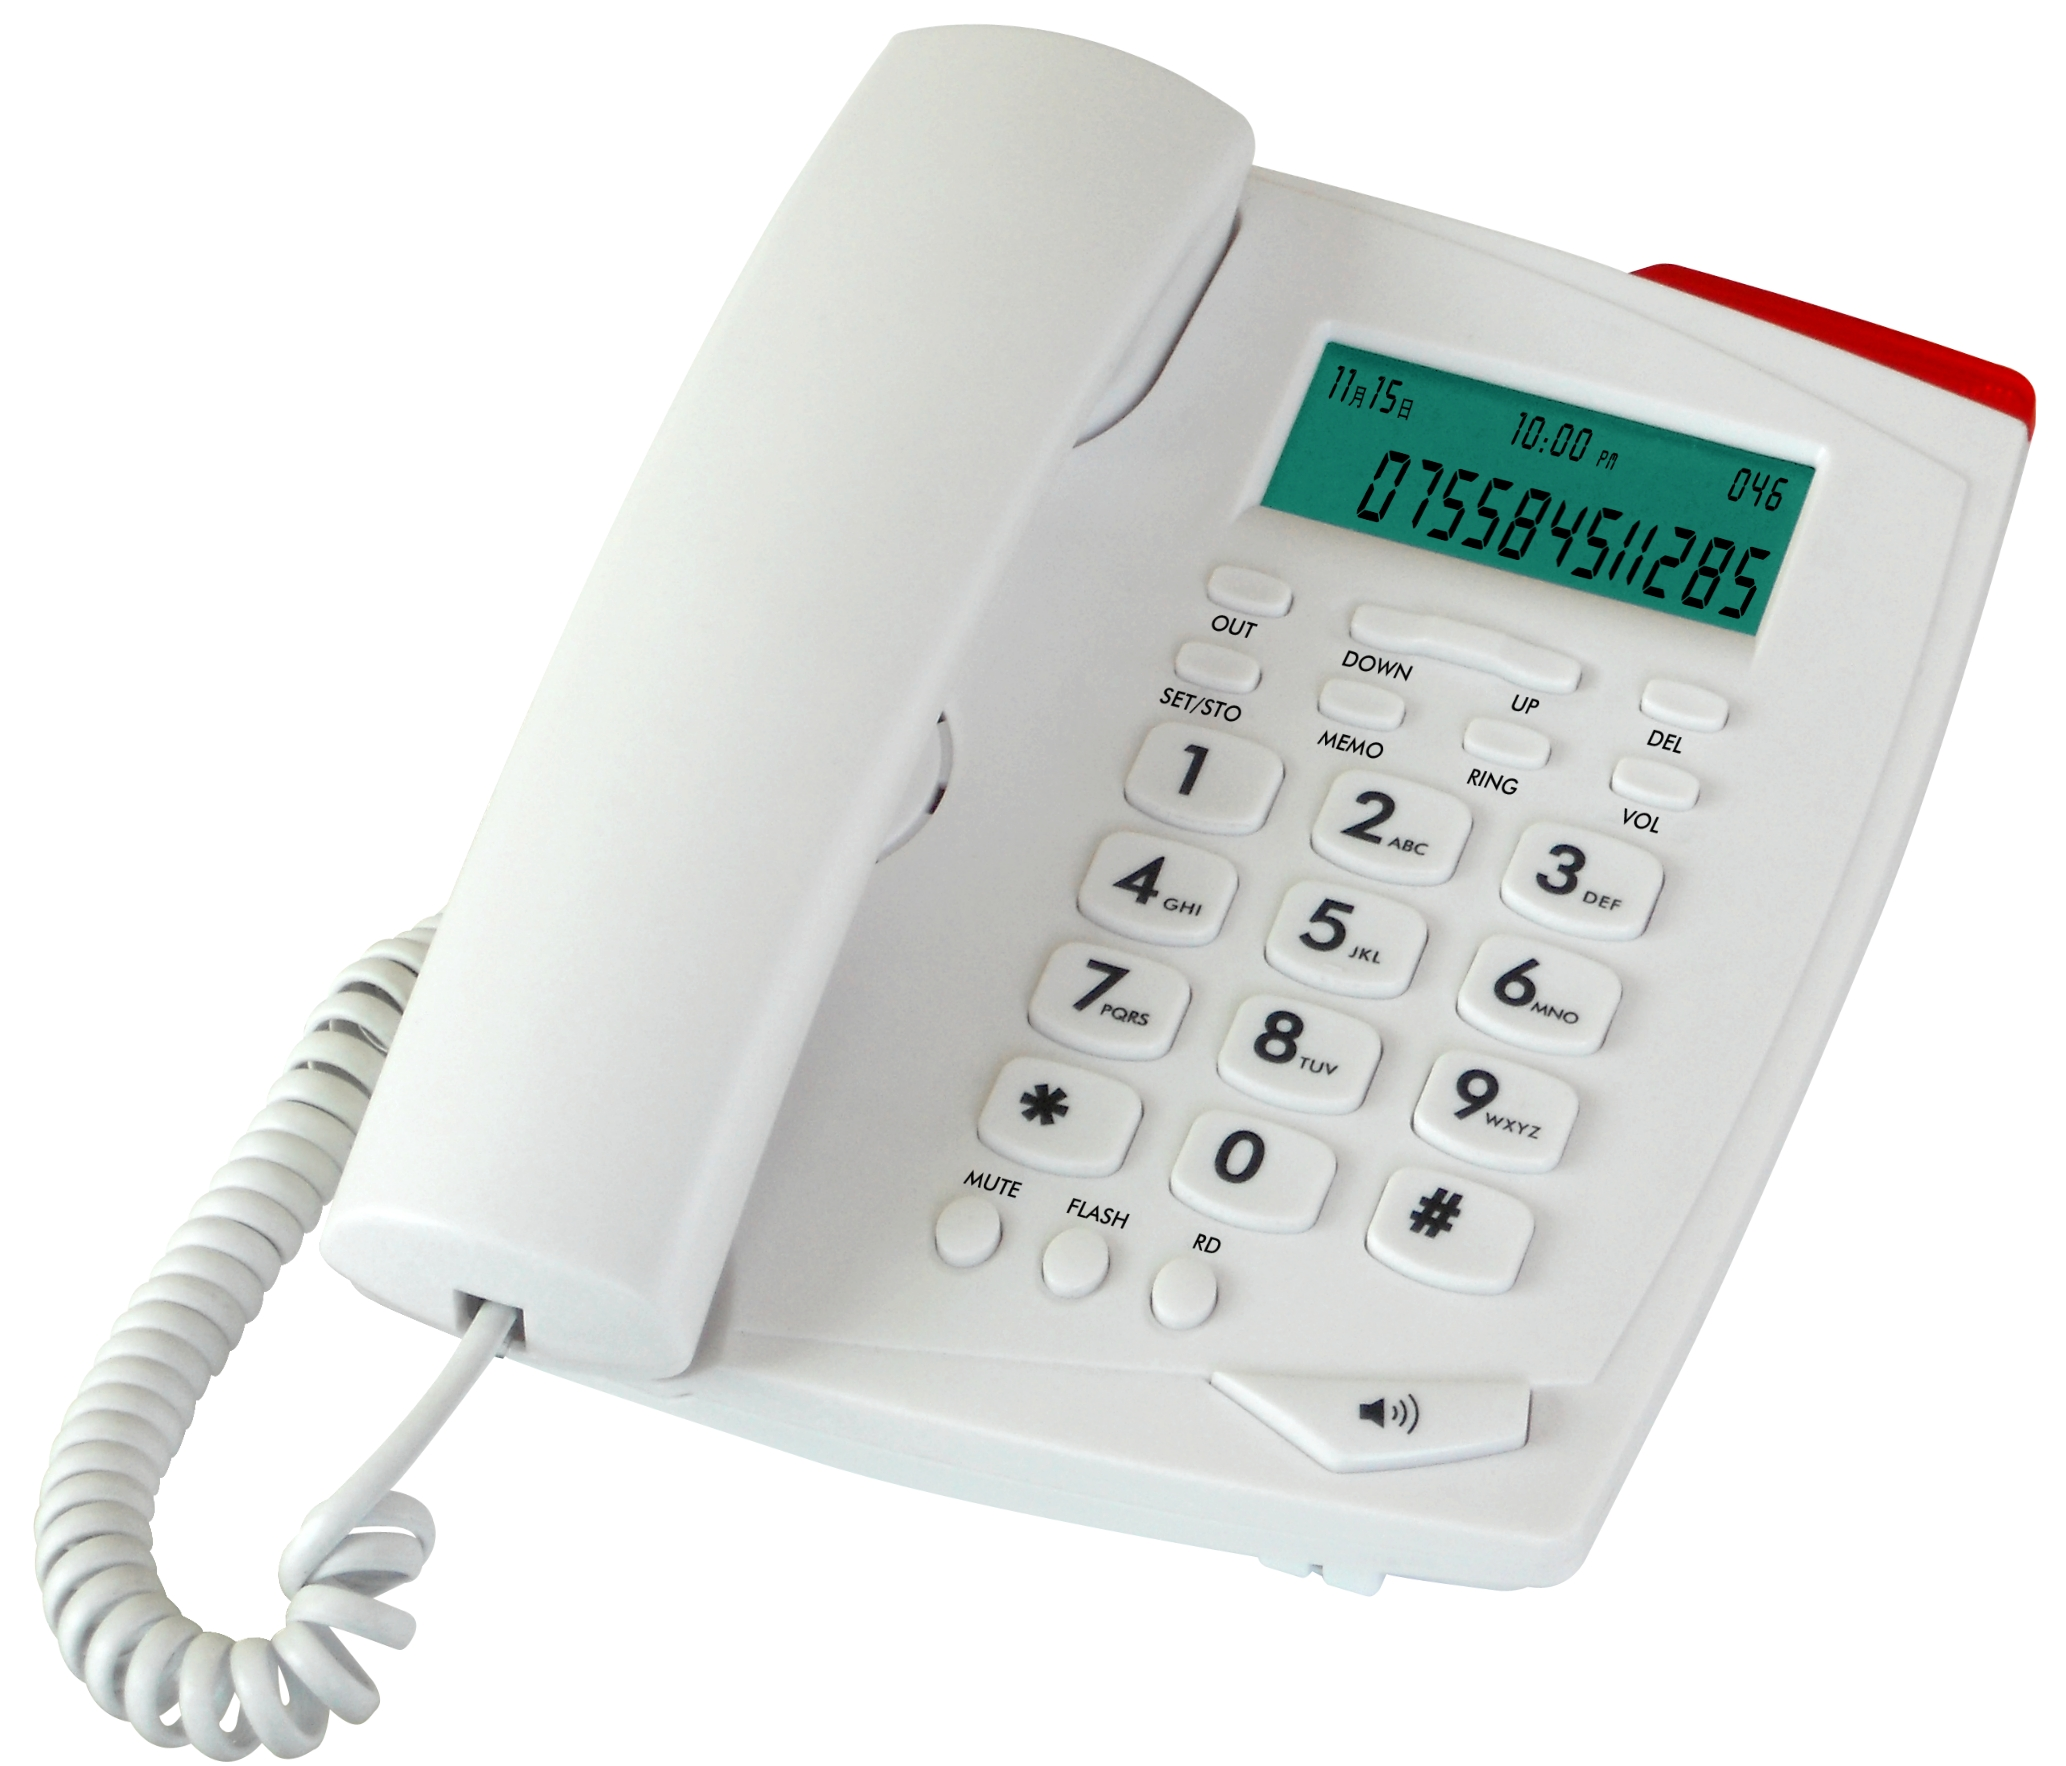 Tel UK Venice Phone Caller ID Telephone - White